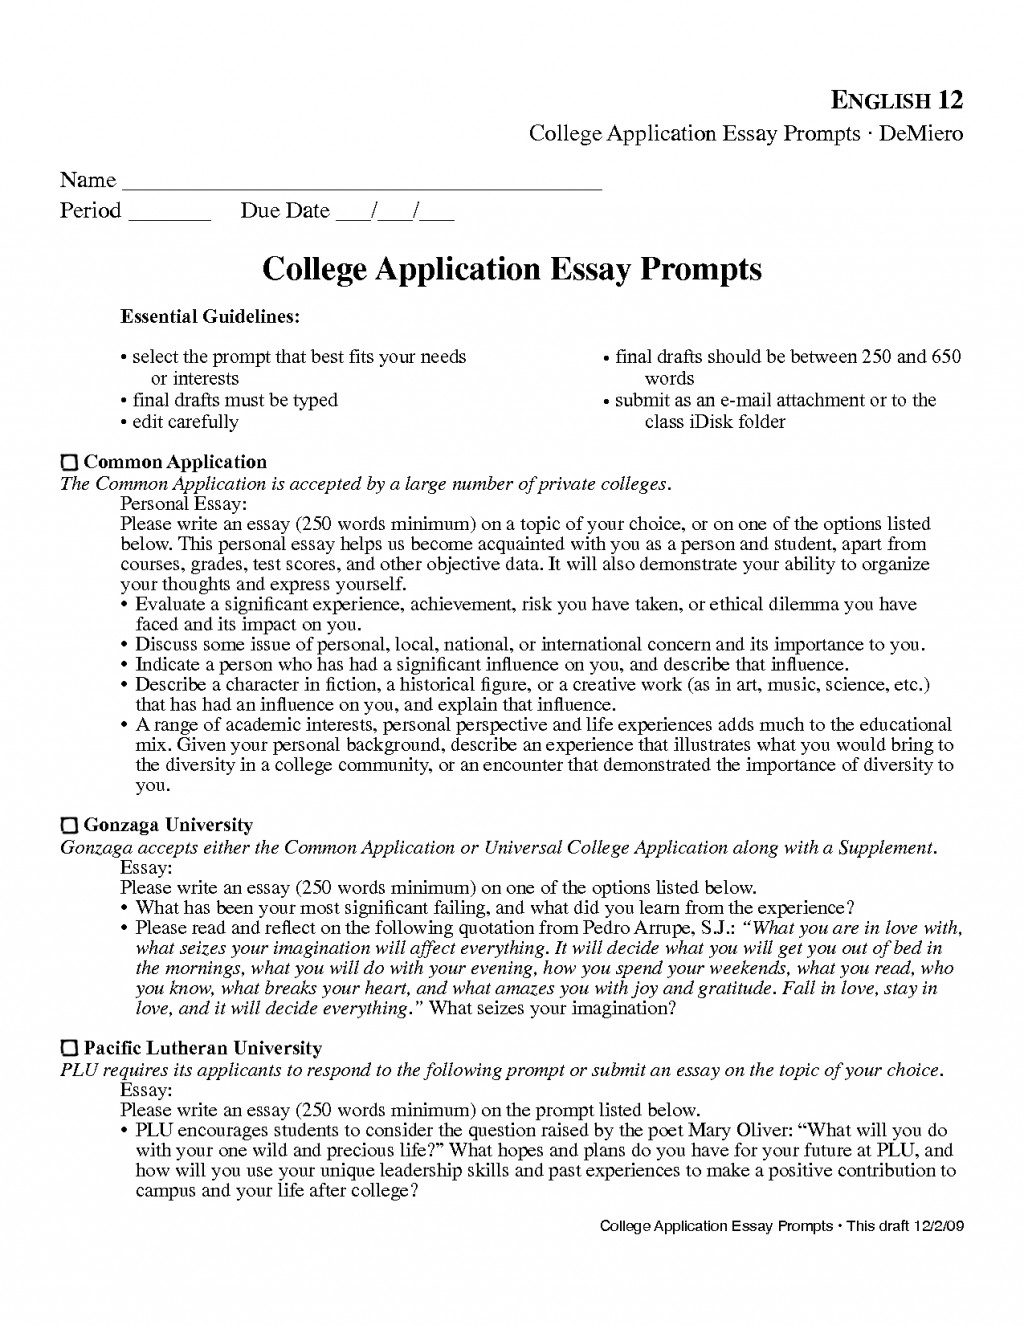 004 Common App Essay Questions College Admission Topics Writings And Essays Application Onwe Bioinnovate Co Throu Questionamples Rutgers To Avoid Good Prompt Cliche Dreaded 2017 2017-18 Large